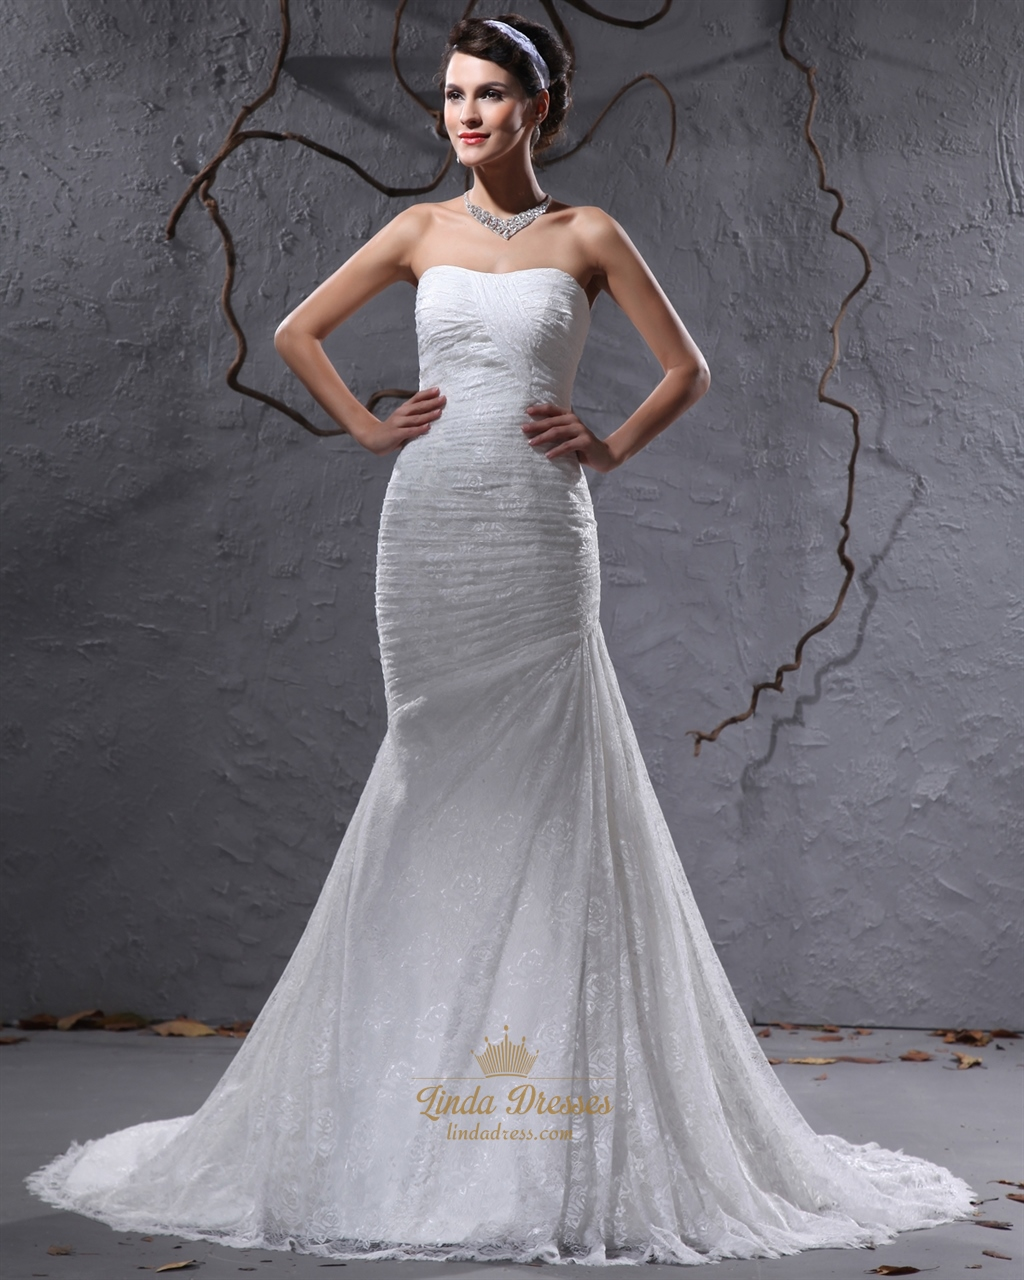 Ivory lace mermaid strapless wedding dresses for petite for Petite bride wedding dress